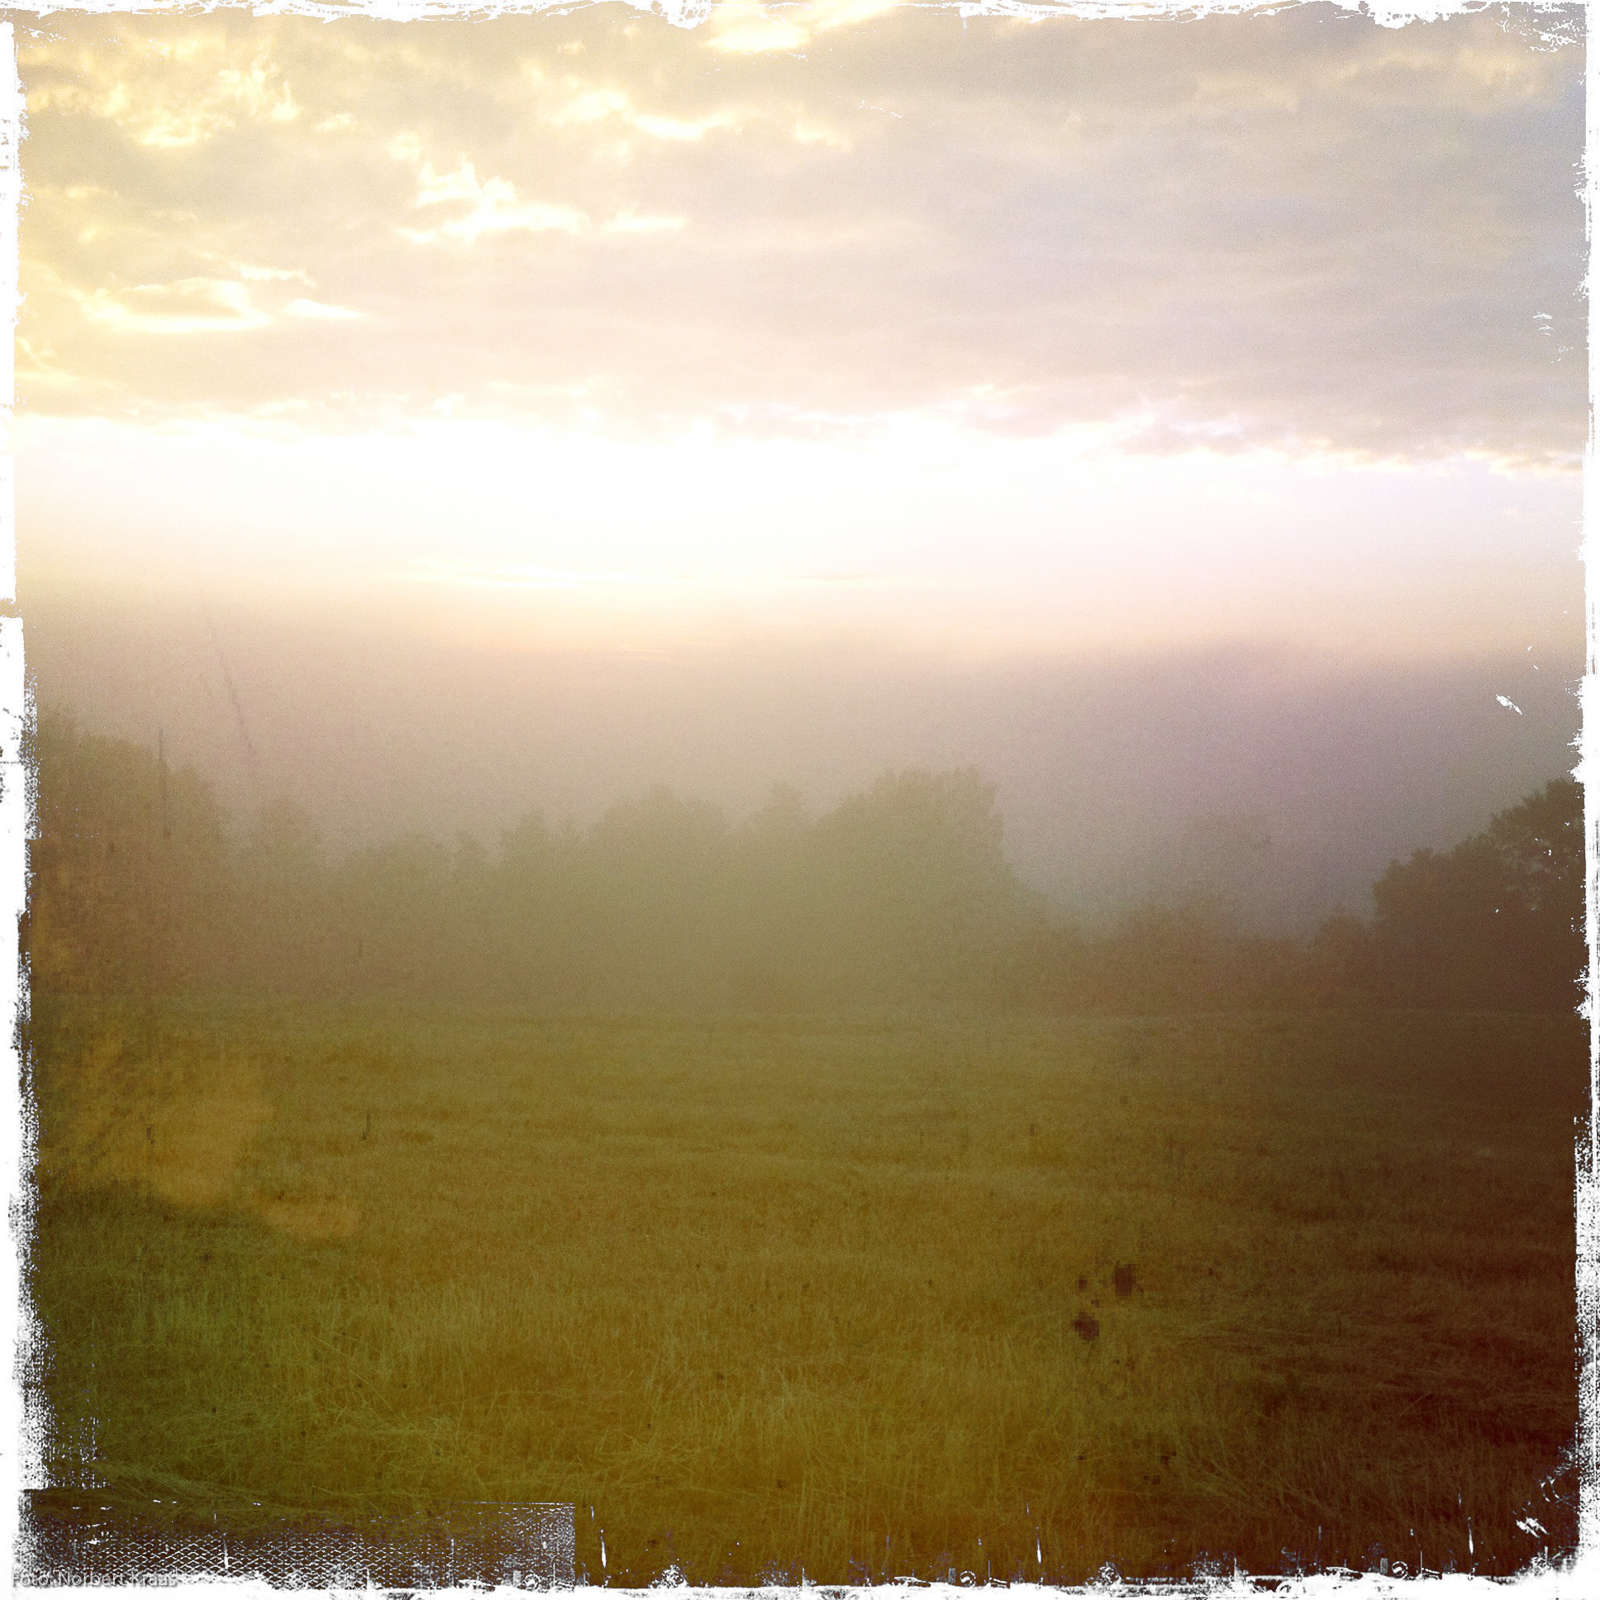 Hipsta-David-Friedrich-Stiimmung am Montagmorgen.